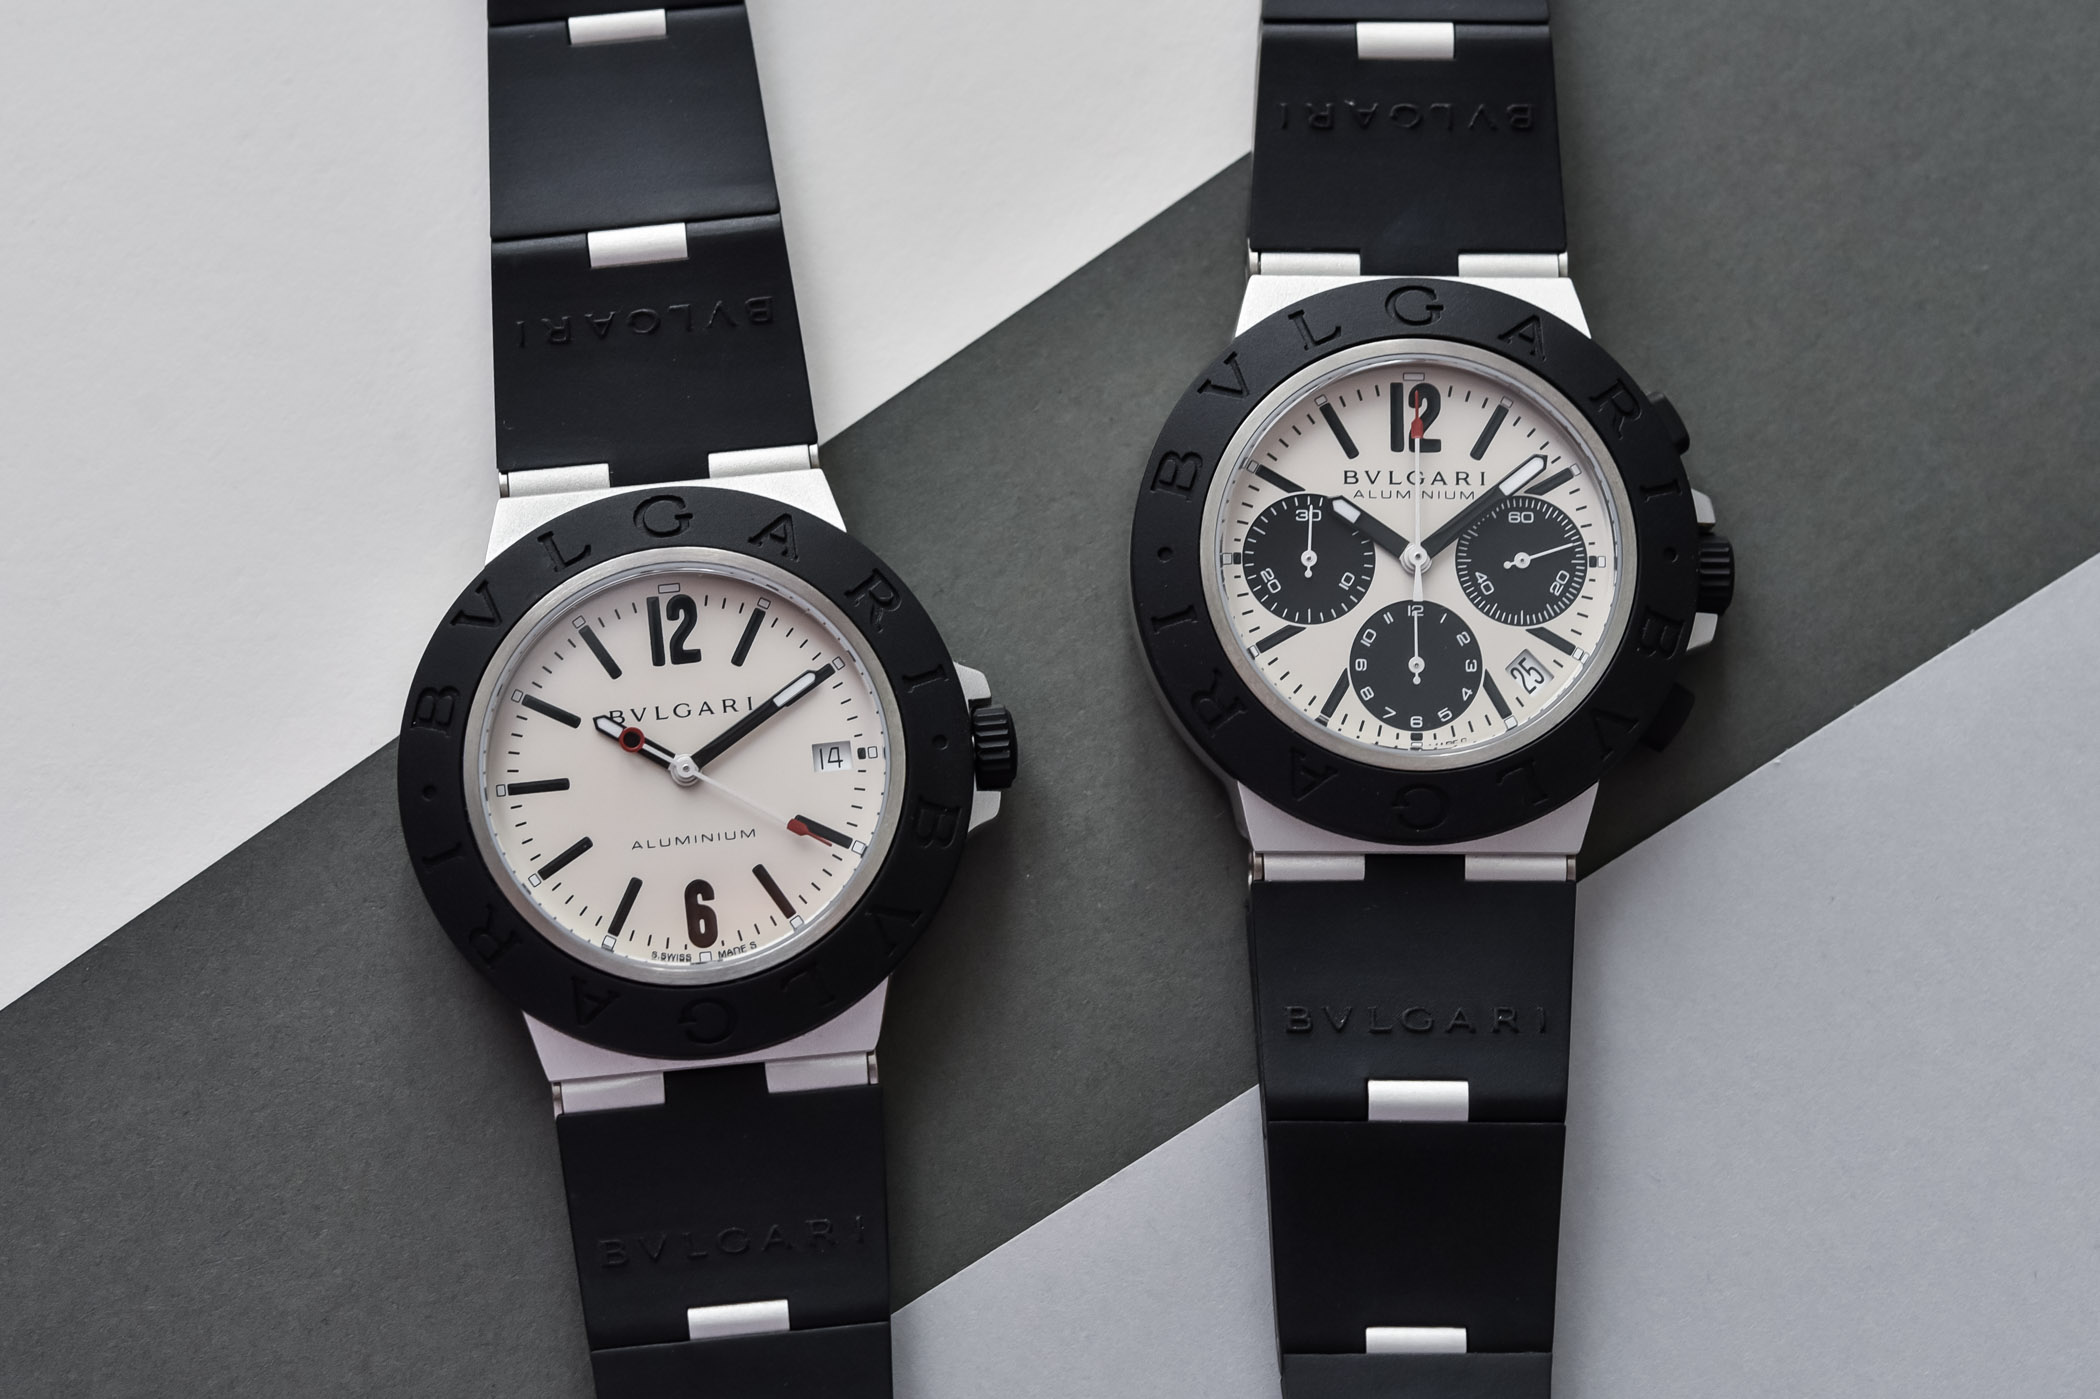 Introducing The 2020 Bvlgari Aluminium Watch Collection (Review, Price)